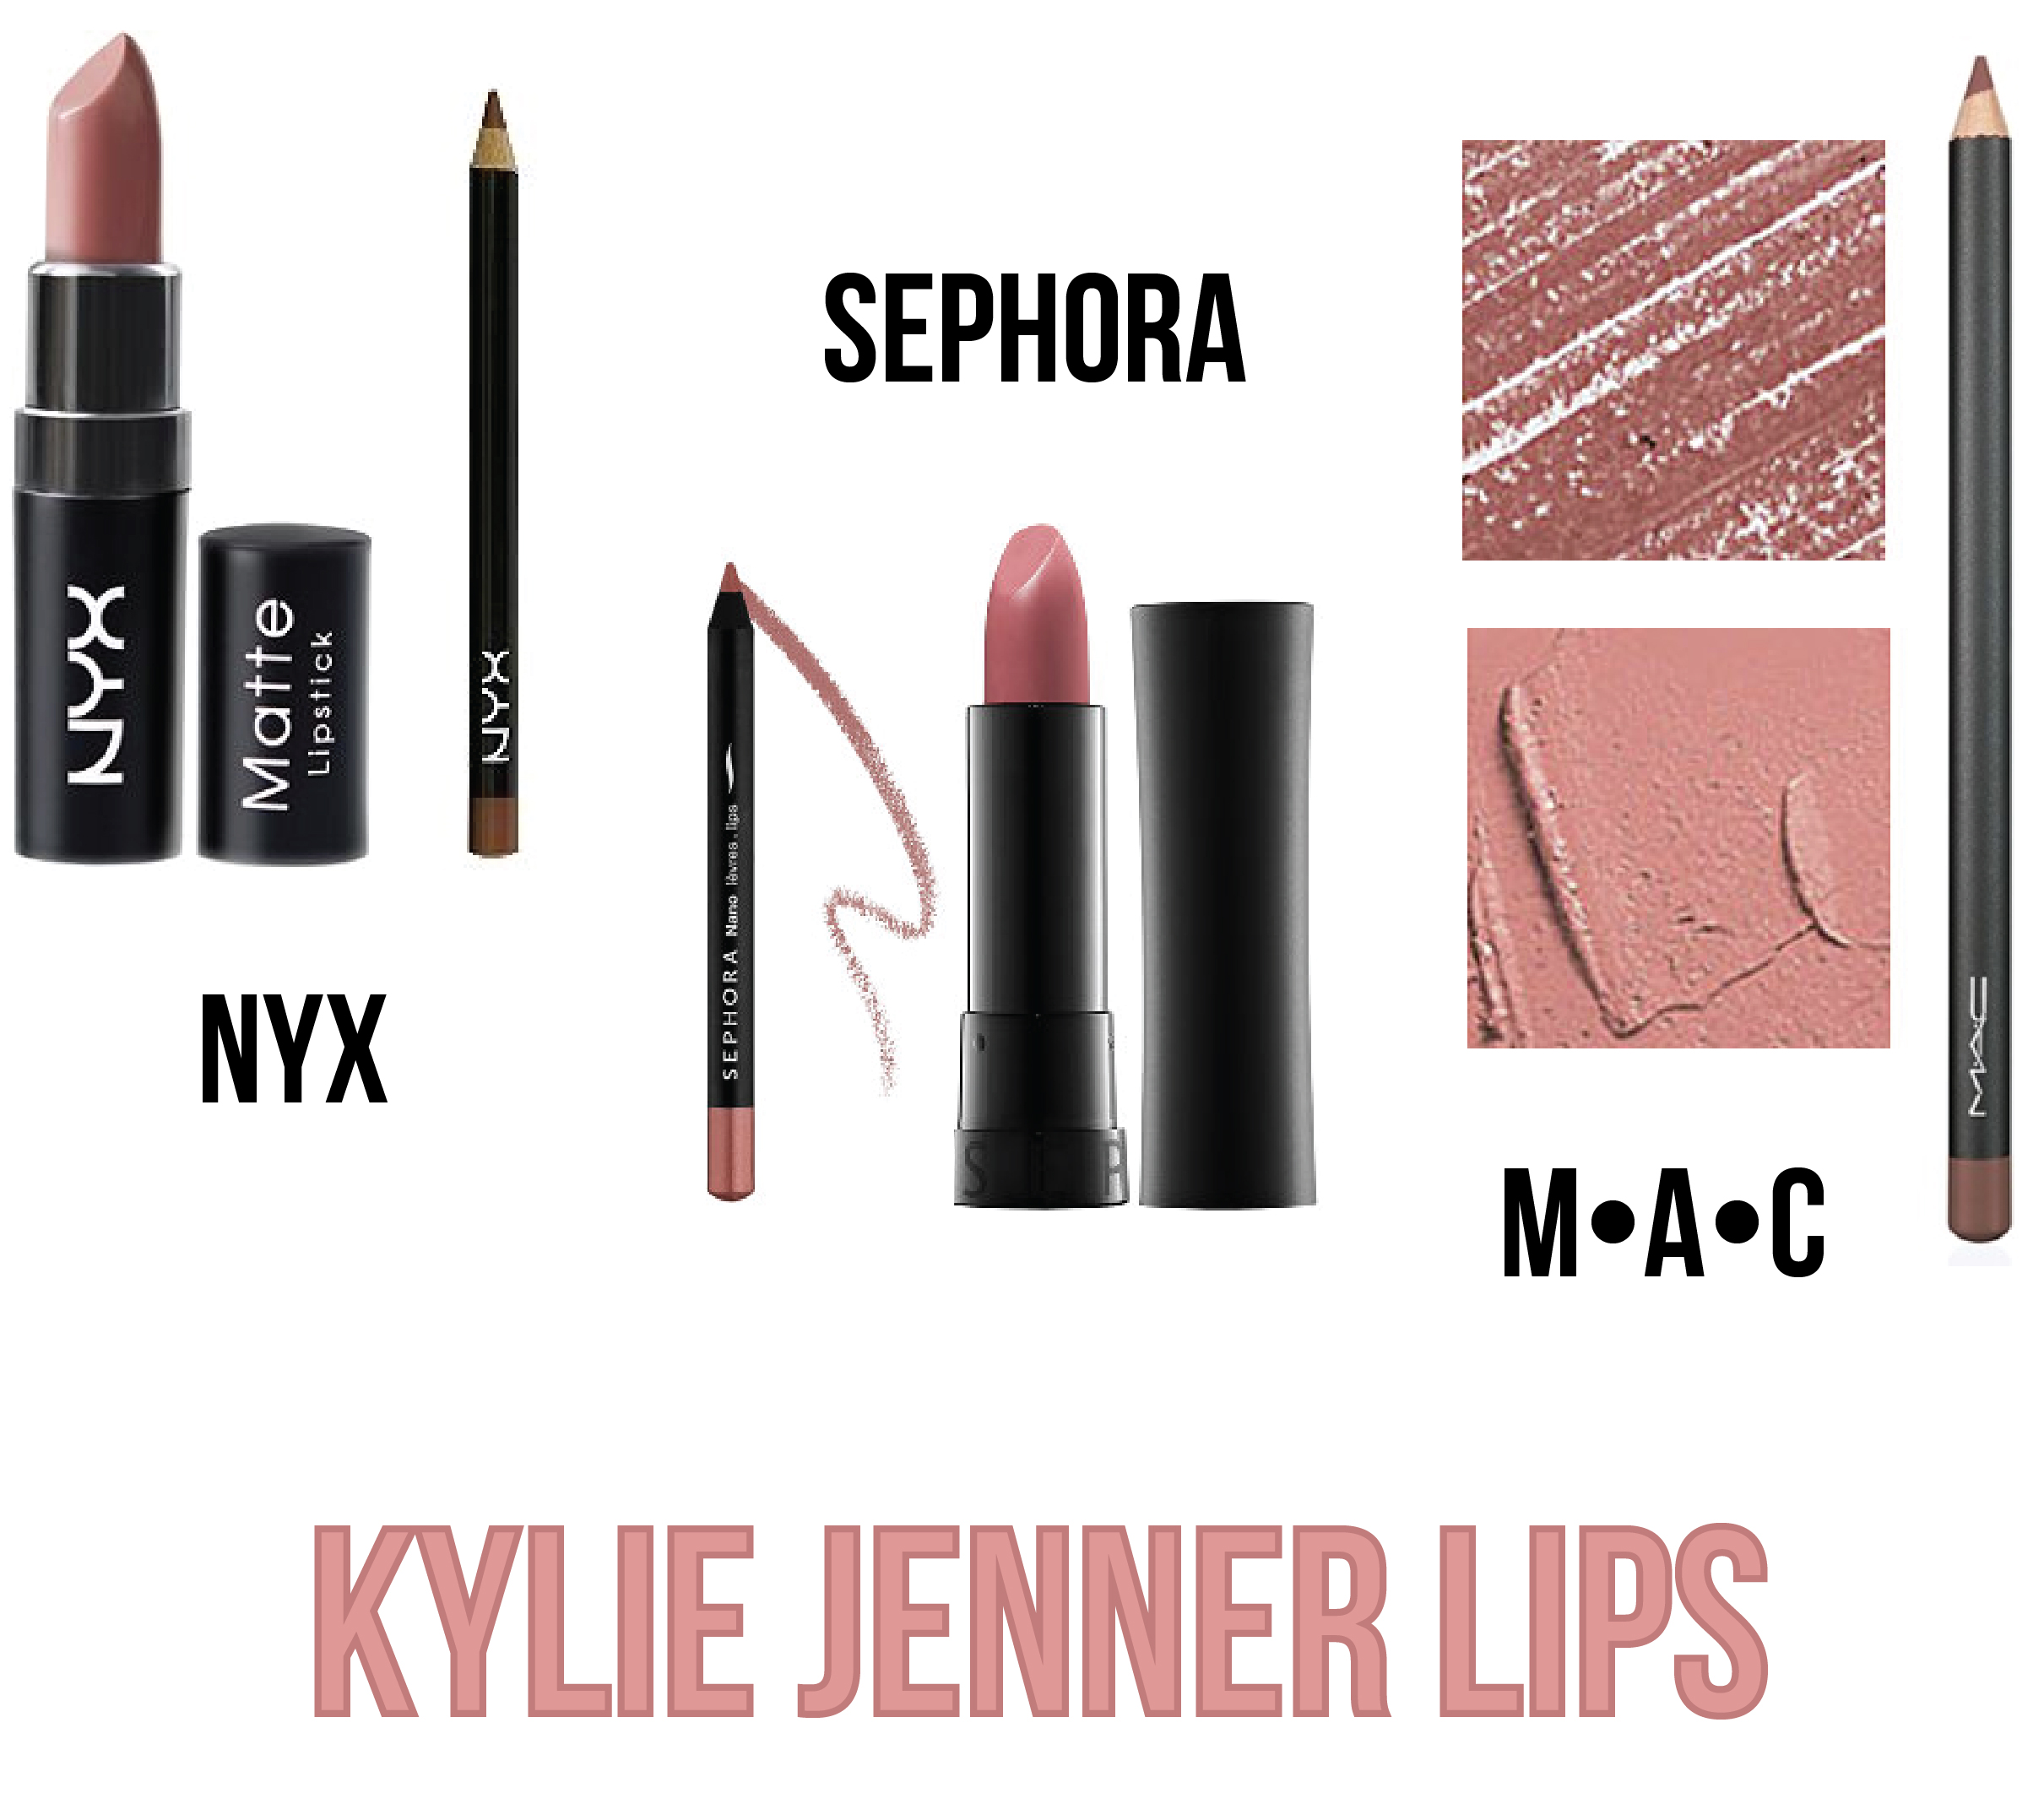 NYX Matte Lipstick in Whipped Caviar  +  NYX Slim Lip Pencil in Ever (or Mauve)  •  Sephora Collection Rouge Cream Lipstick in Mmm...17  +  Sephora Collection Nano Lip Liner in Radiant Rosy  •  MAC Lipstick in Faux  +  MAC Lip Pencil in Whirl (or Spice)